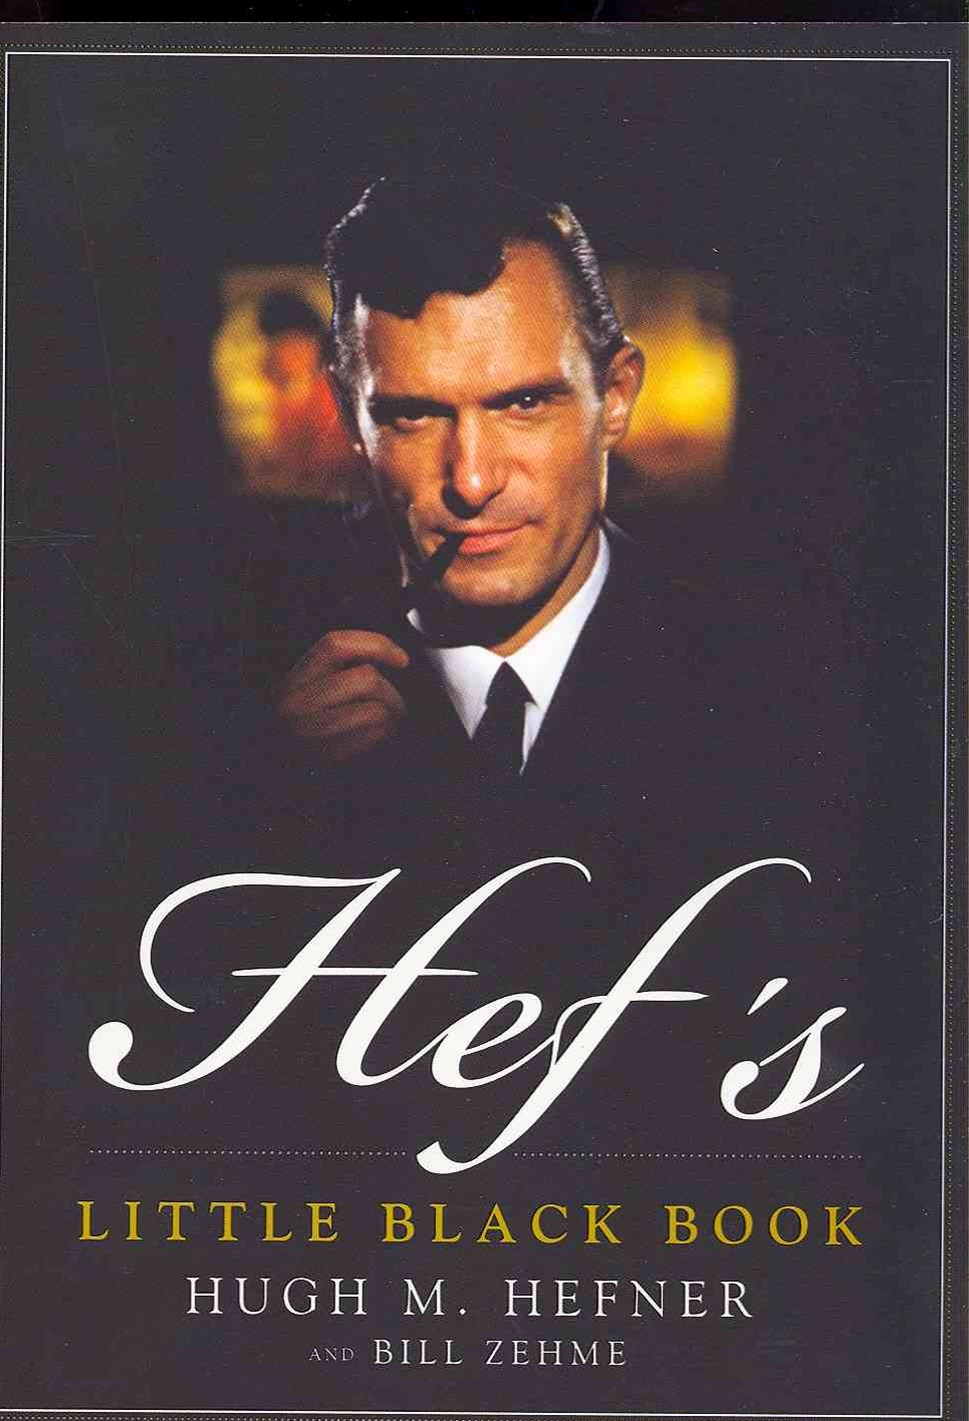 Hef's Little Black Book